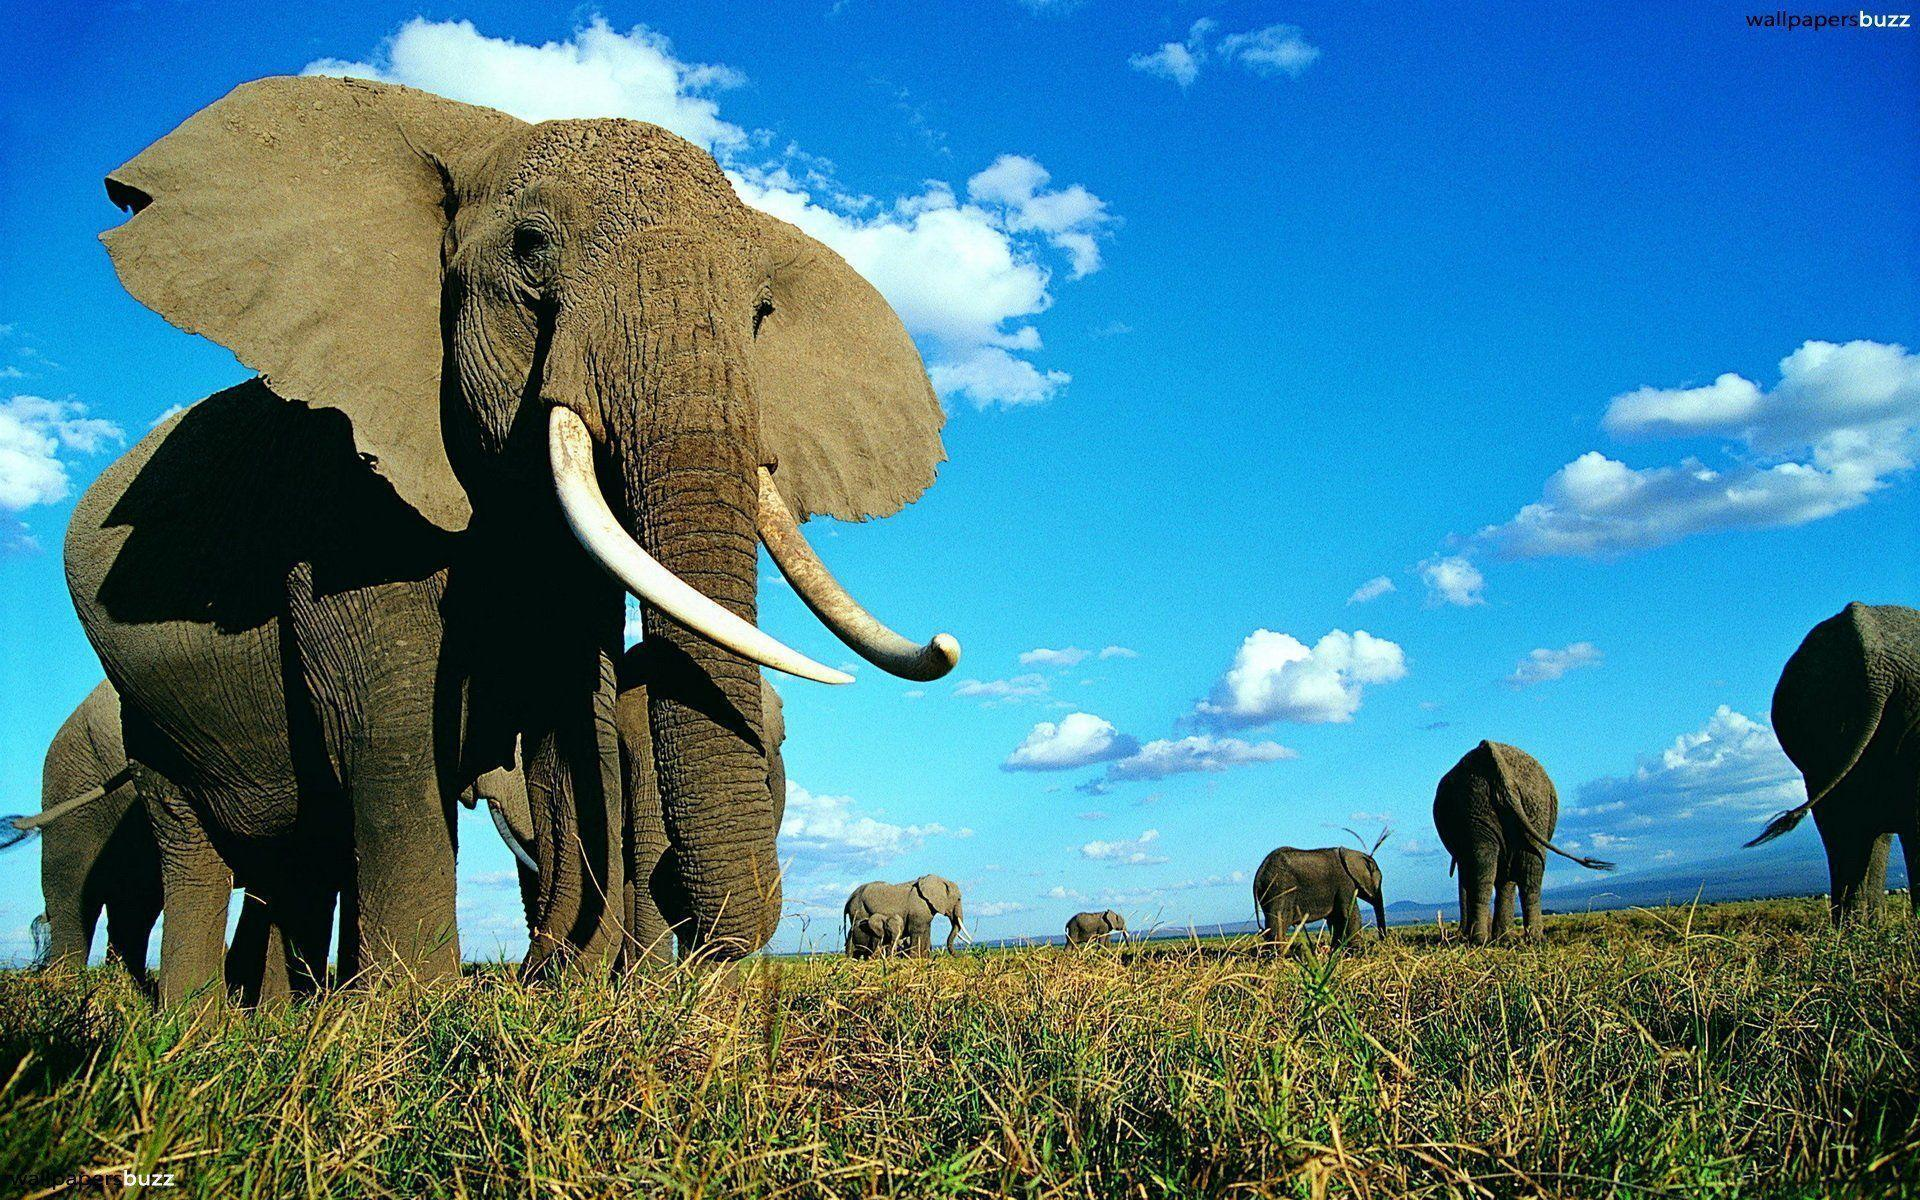 Elephant Wallapaper hd (7) - Wallpapers Online | Amazing ...